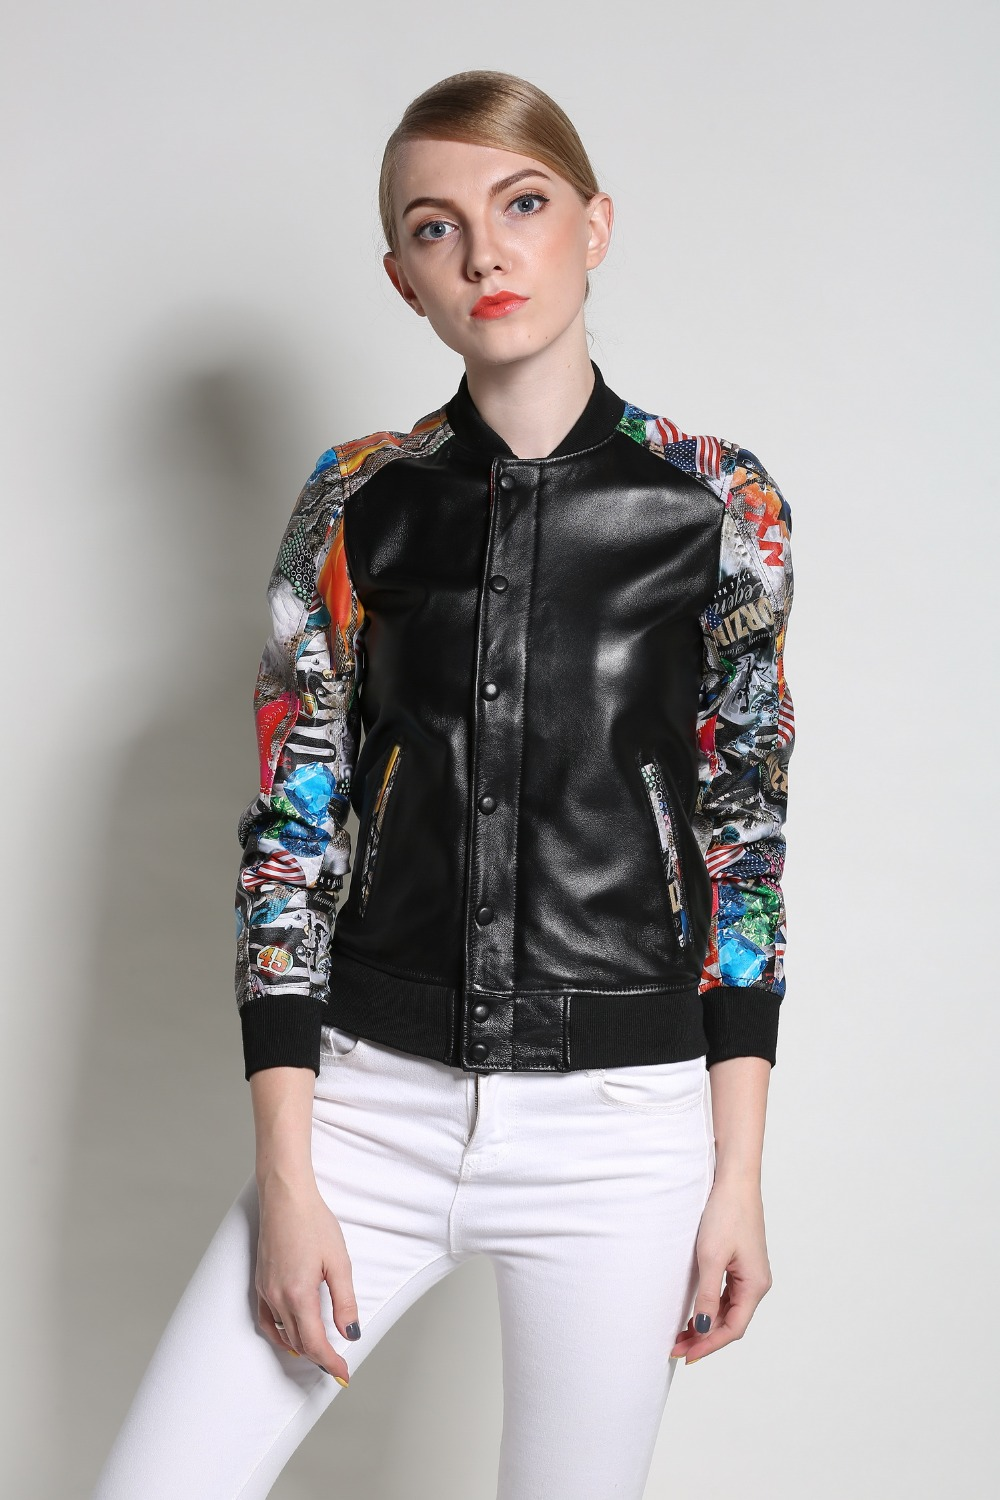 2019 New fashion Women Real leather jackets and coats Printed Genuine leather jacket Spring autumn black